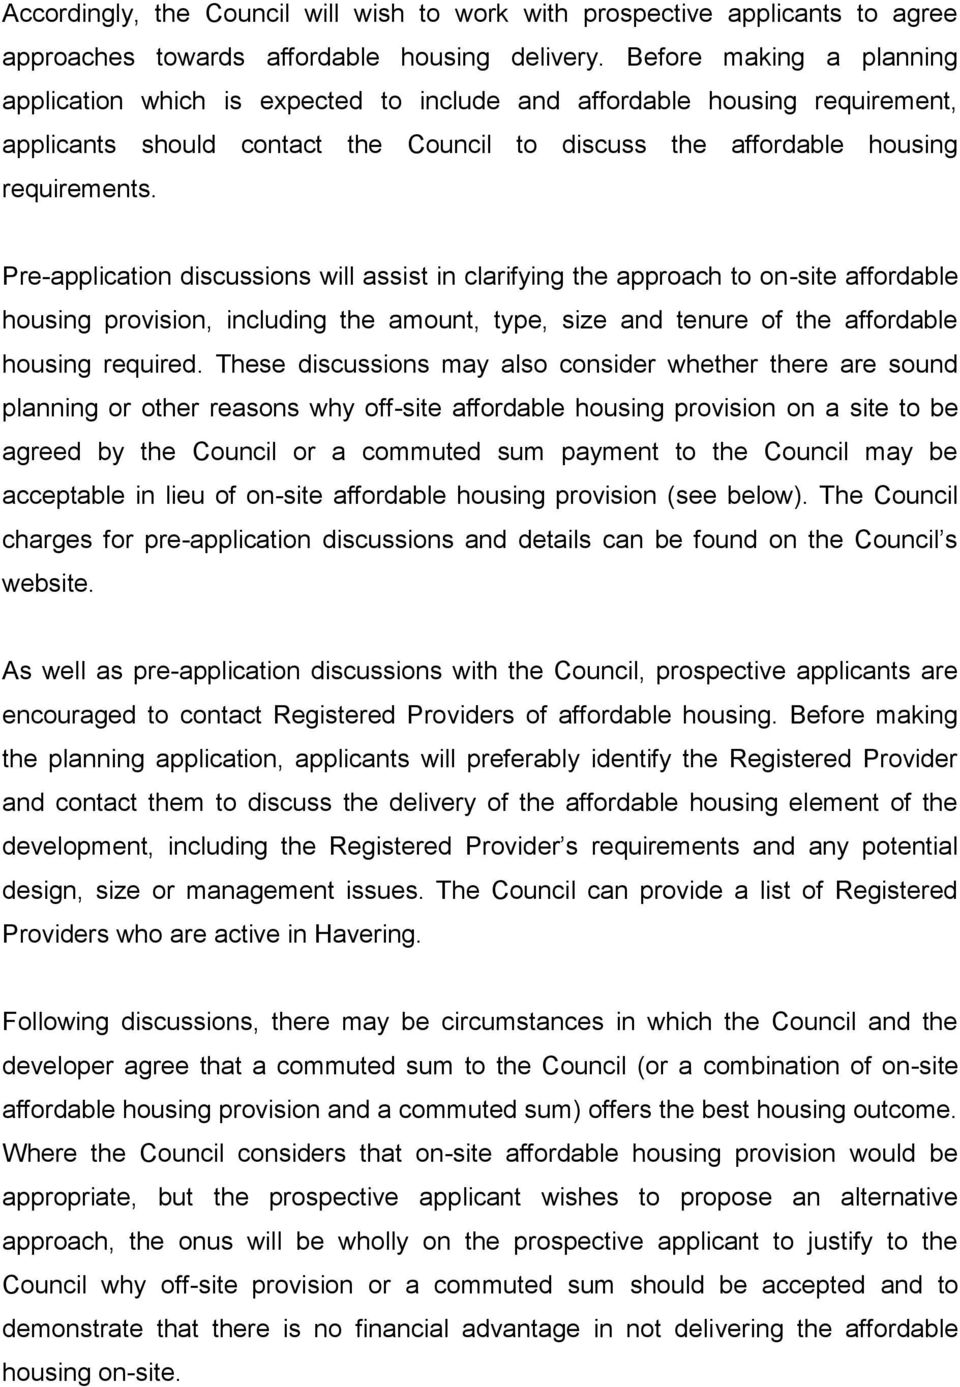 Pre-application discussions will assist in clarifying the approach to on-site affordable housing provision, including the amount, type, size and tenure of the affordable housing required.